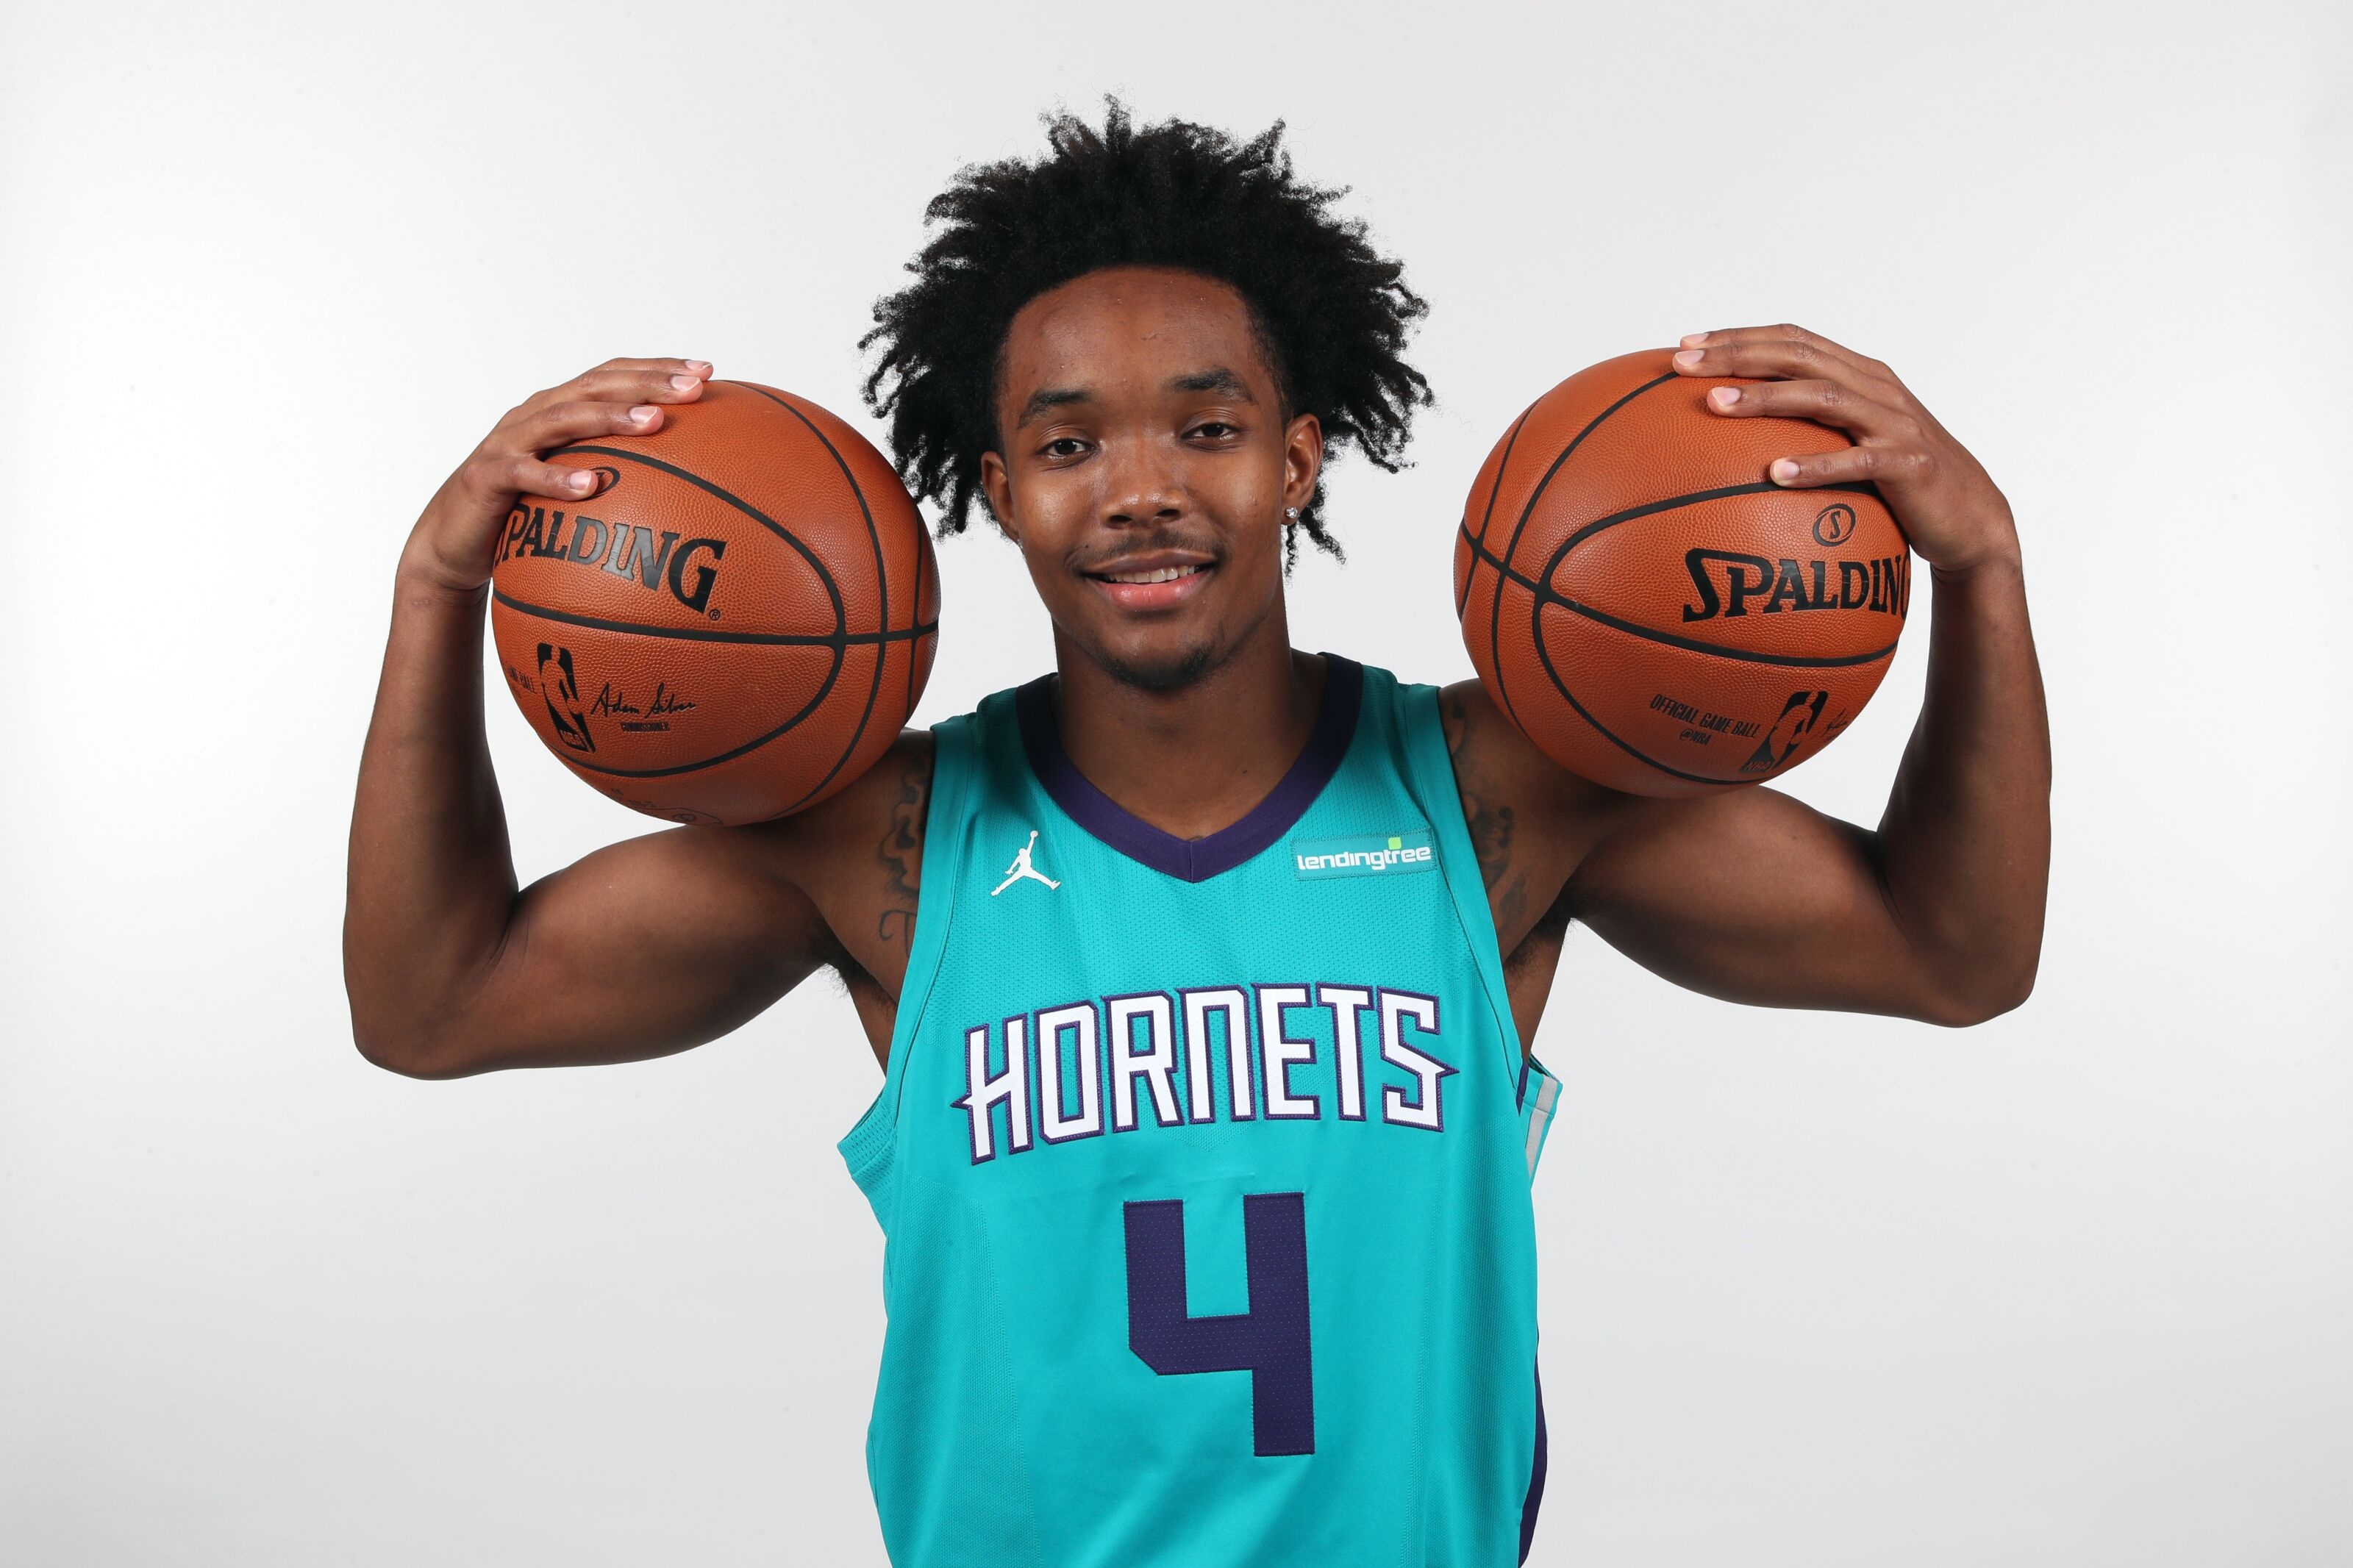 c2d84e152 Charlotte Hornets  3 reasons Devonte  Graham was a good pick